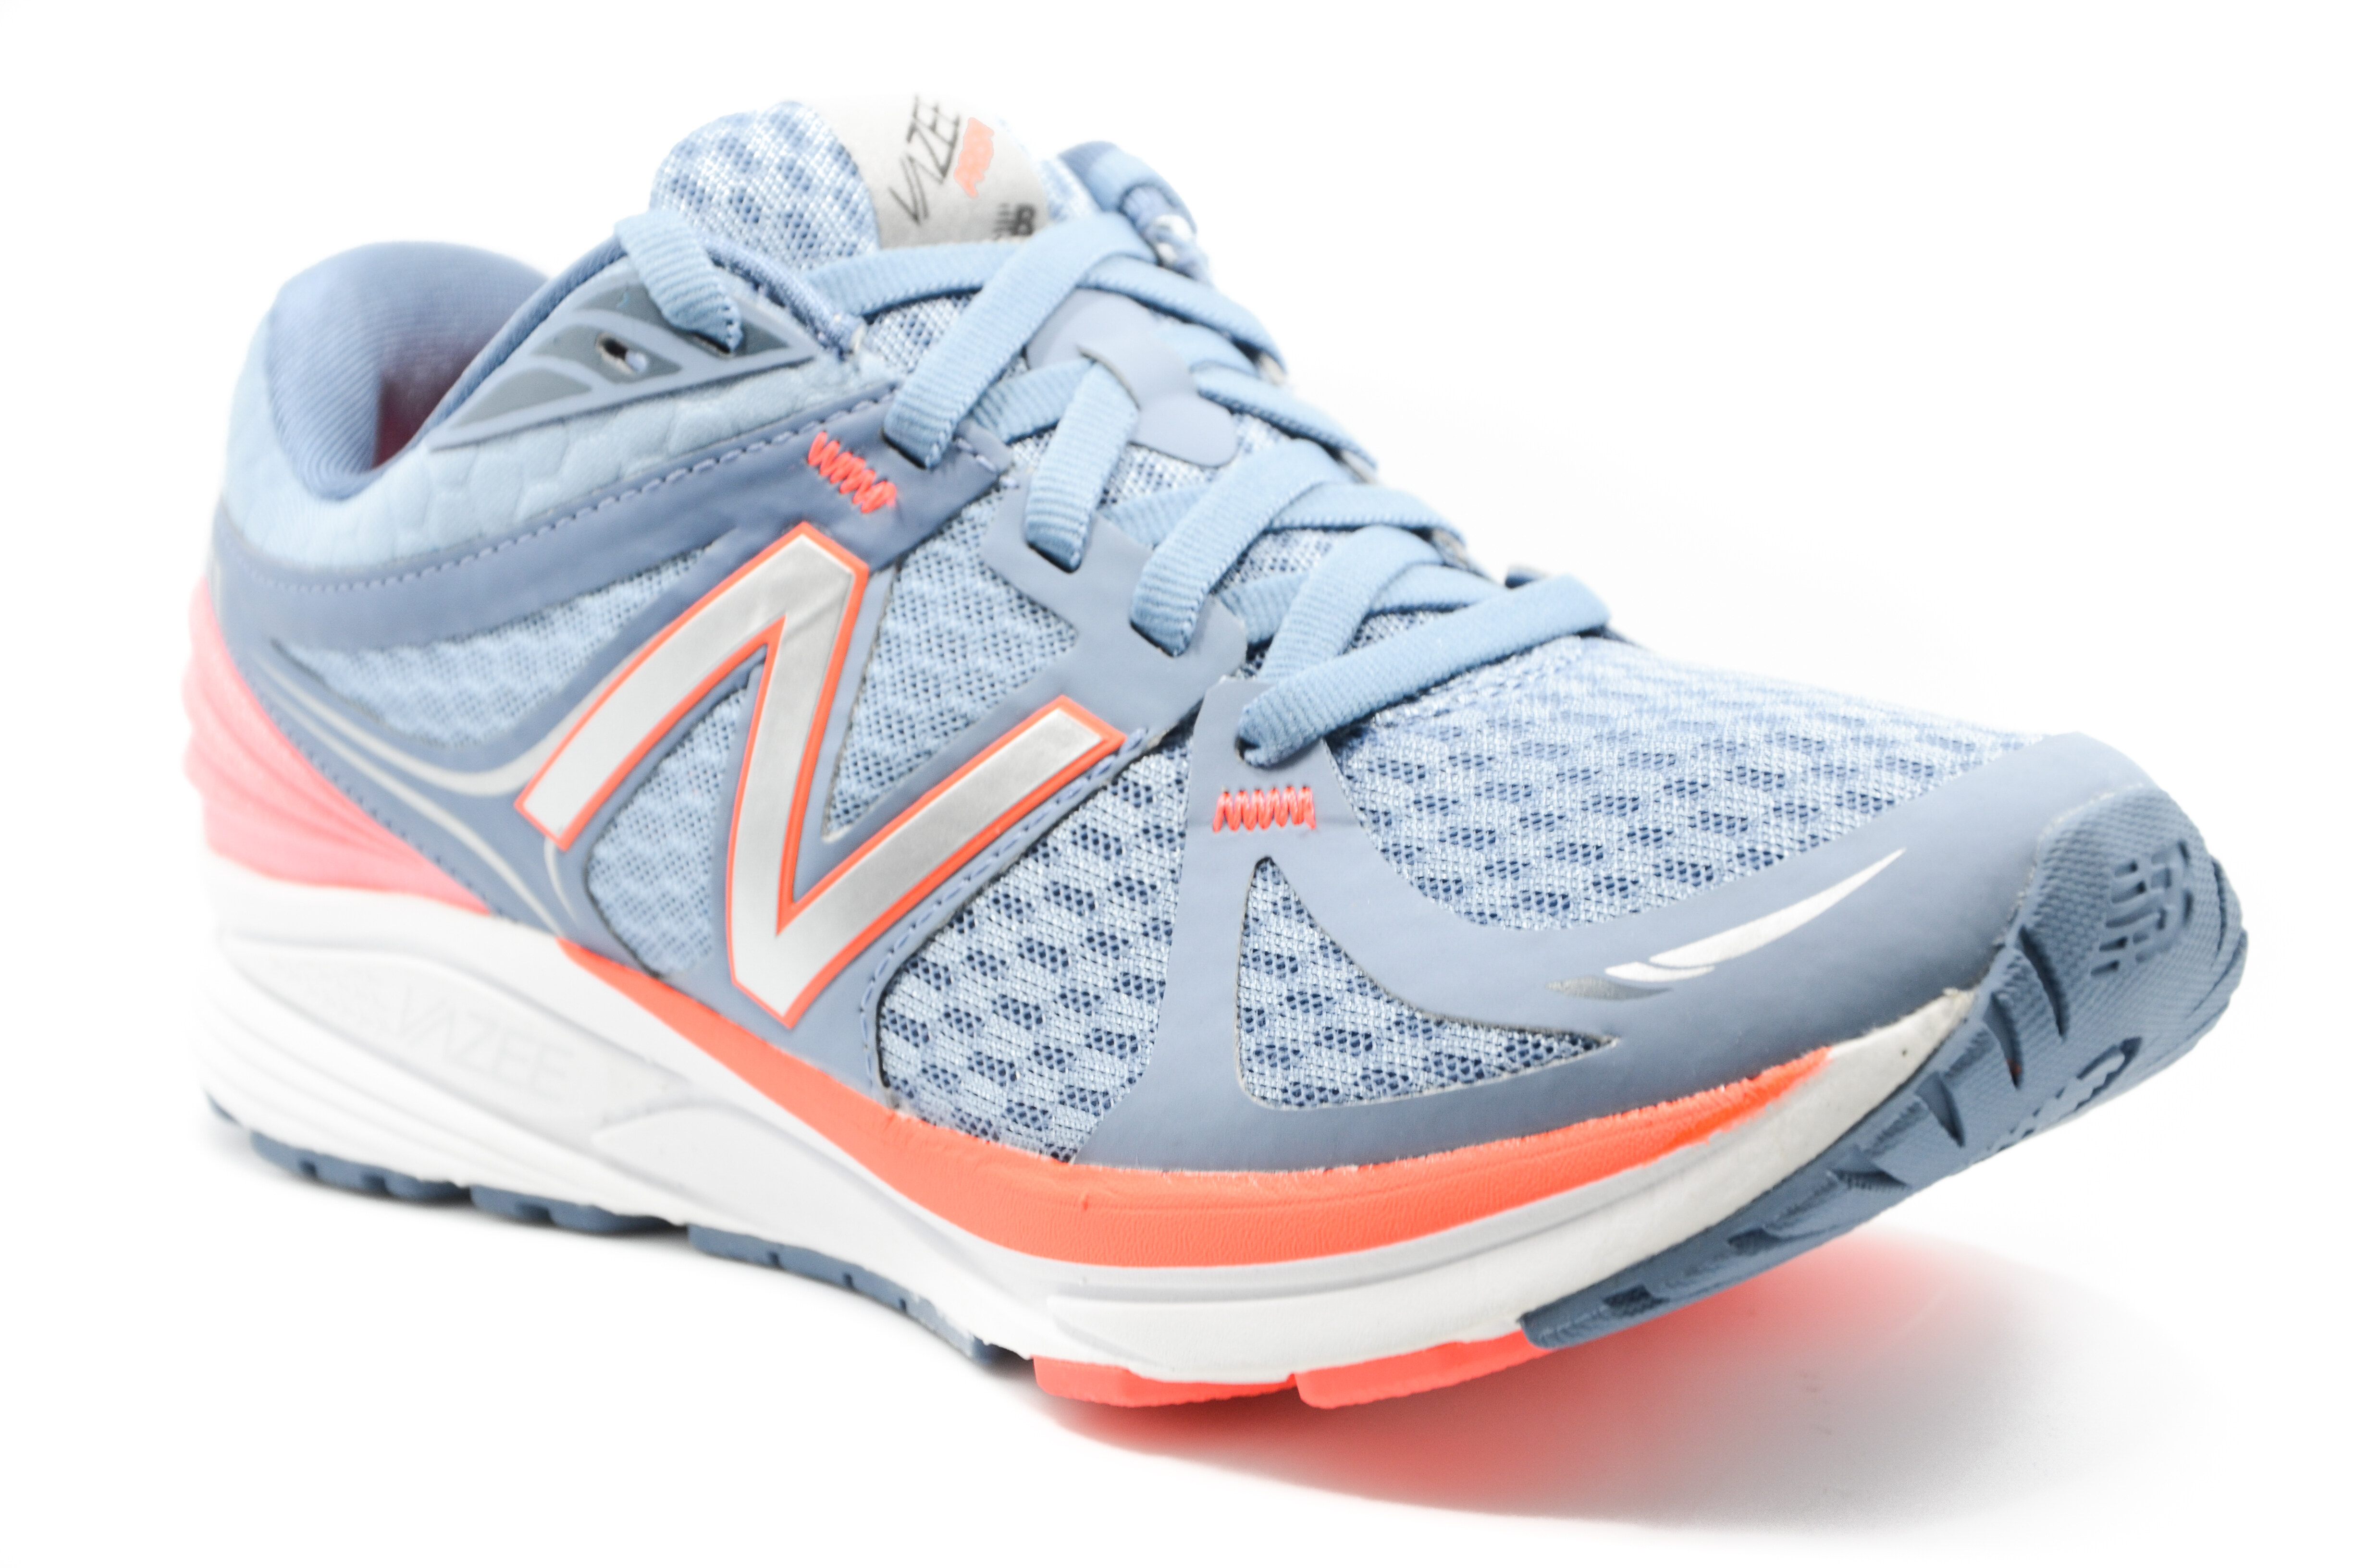 4bdf9d421a5 Running Shoes by New Balance reviews, ratings and best price in KL ...